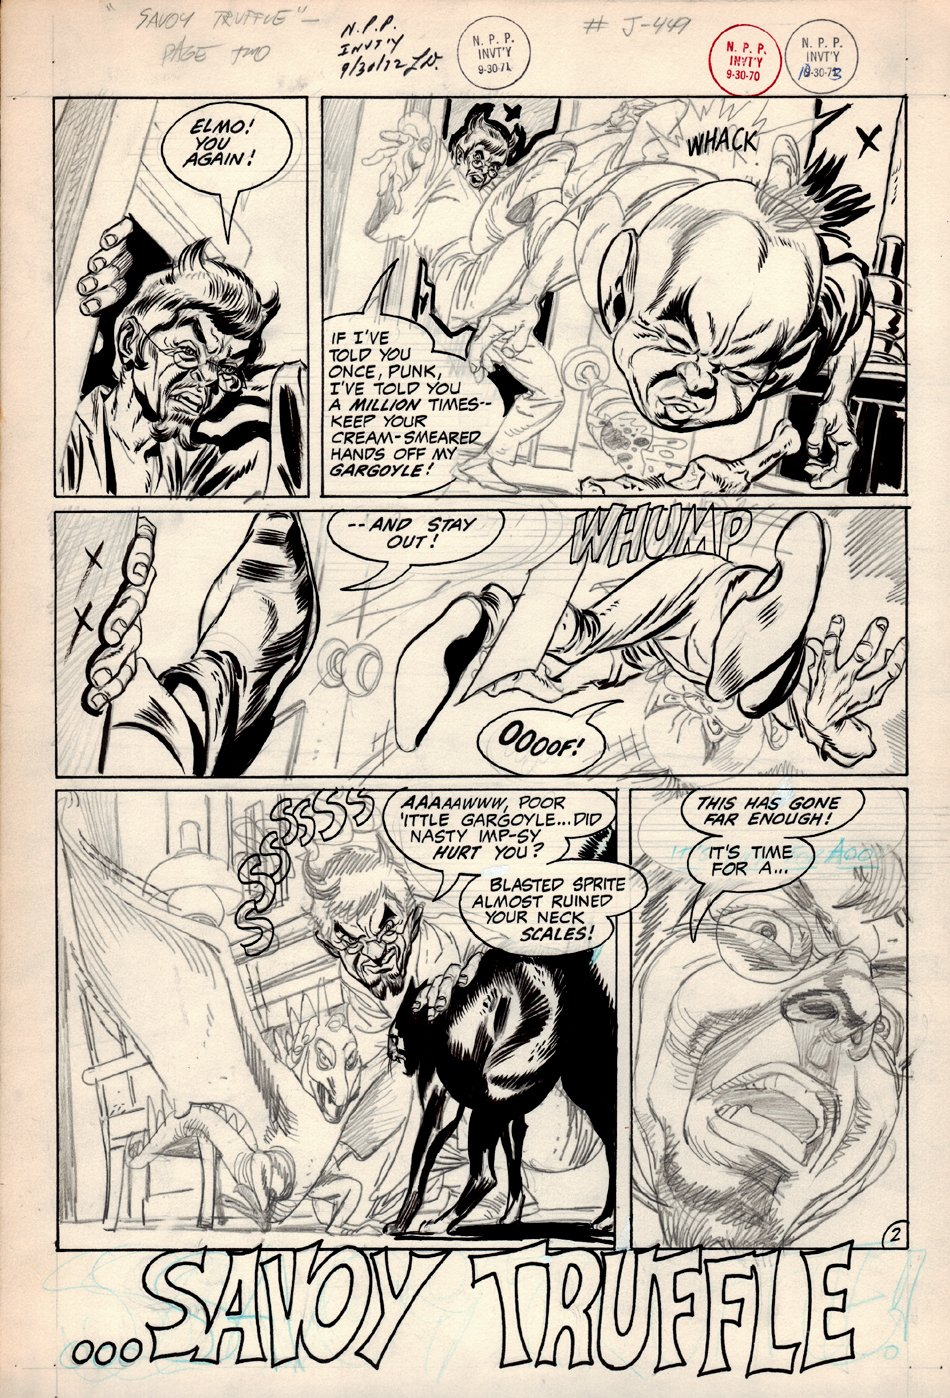 DC Silver Age House Of Mystery Unused Horror Page 2 Partially inked (CAIN & EVIL ELMO!) 1967